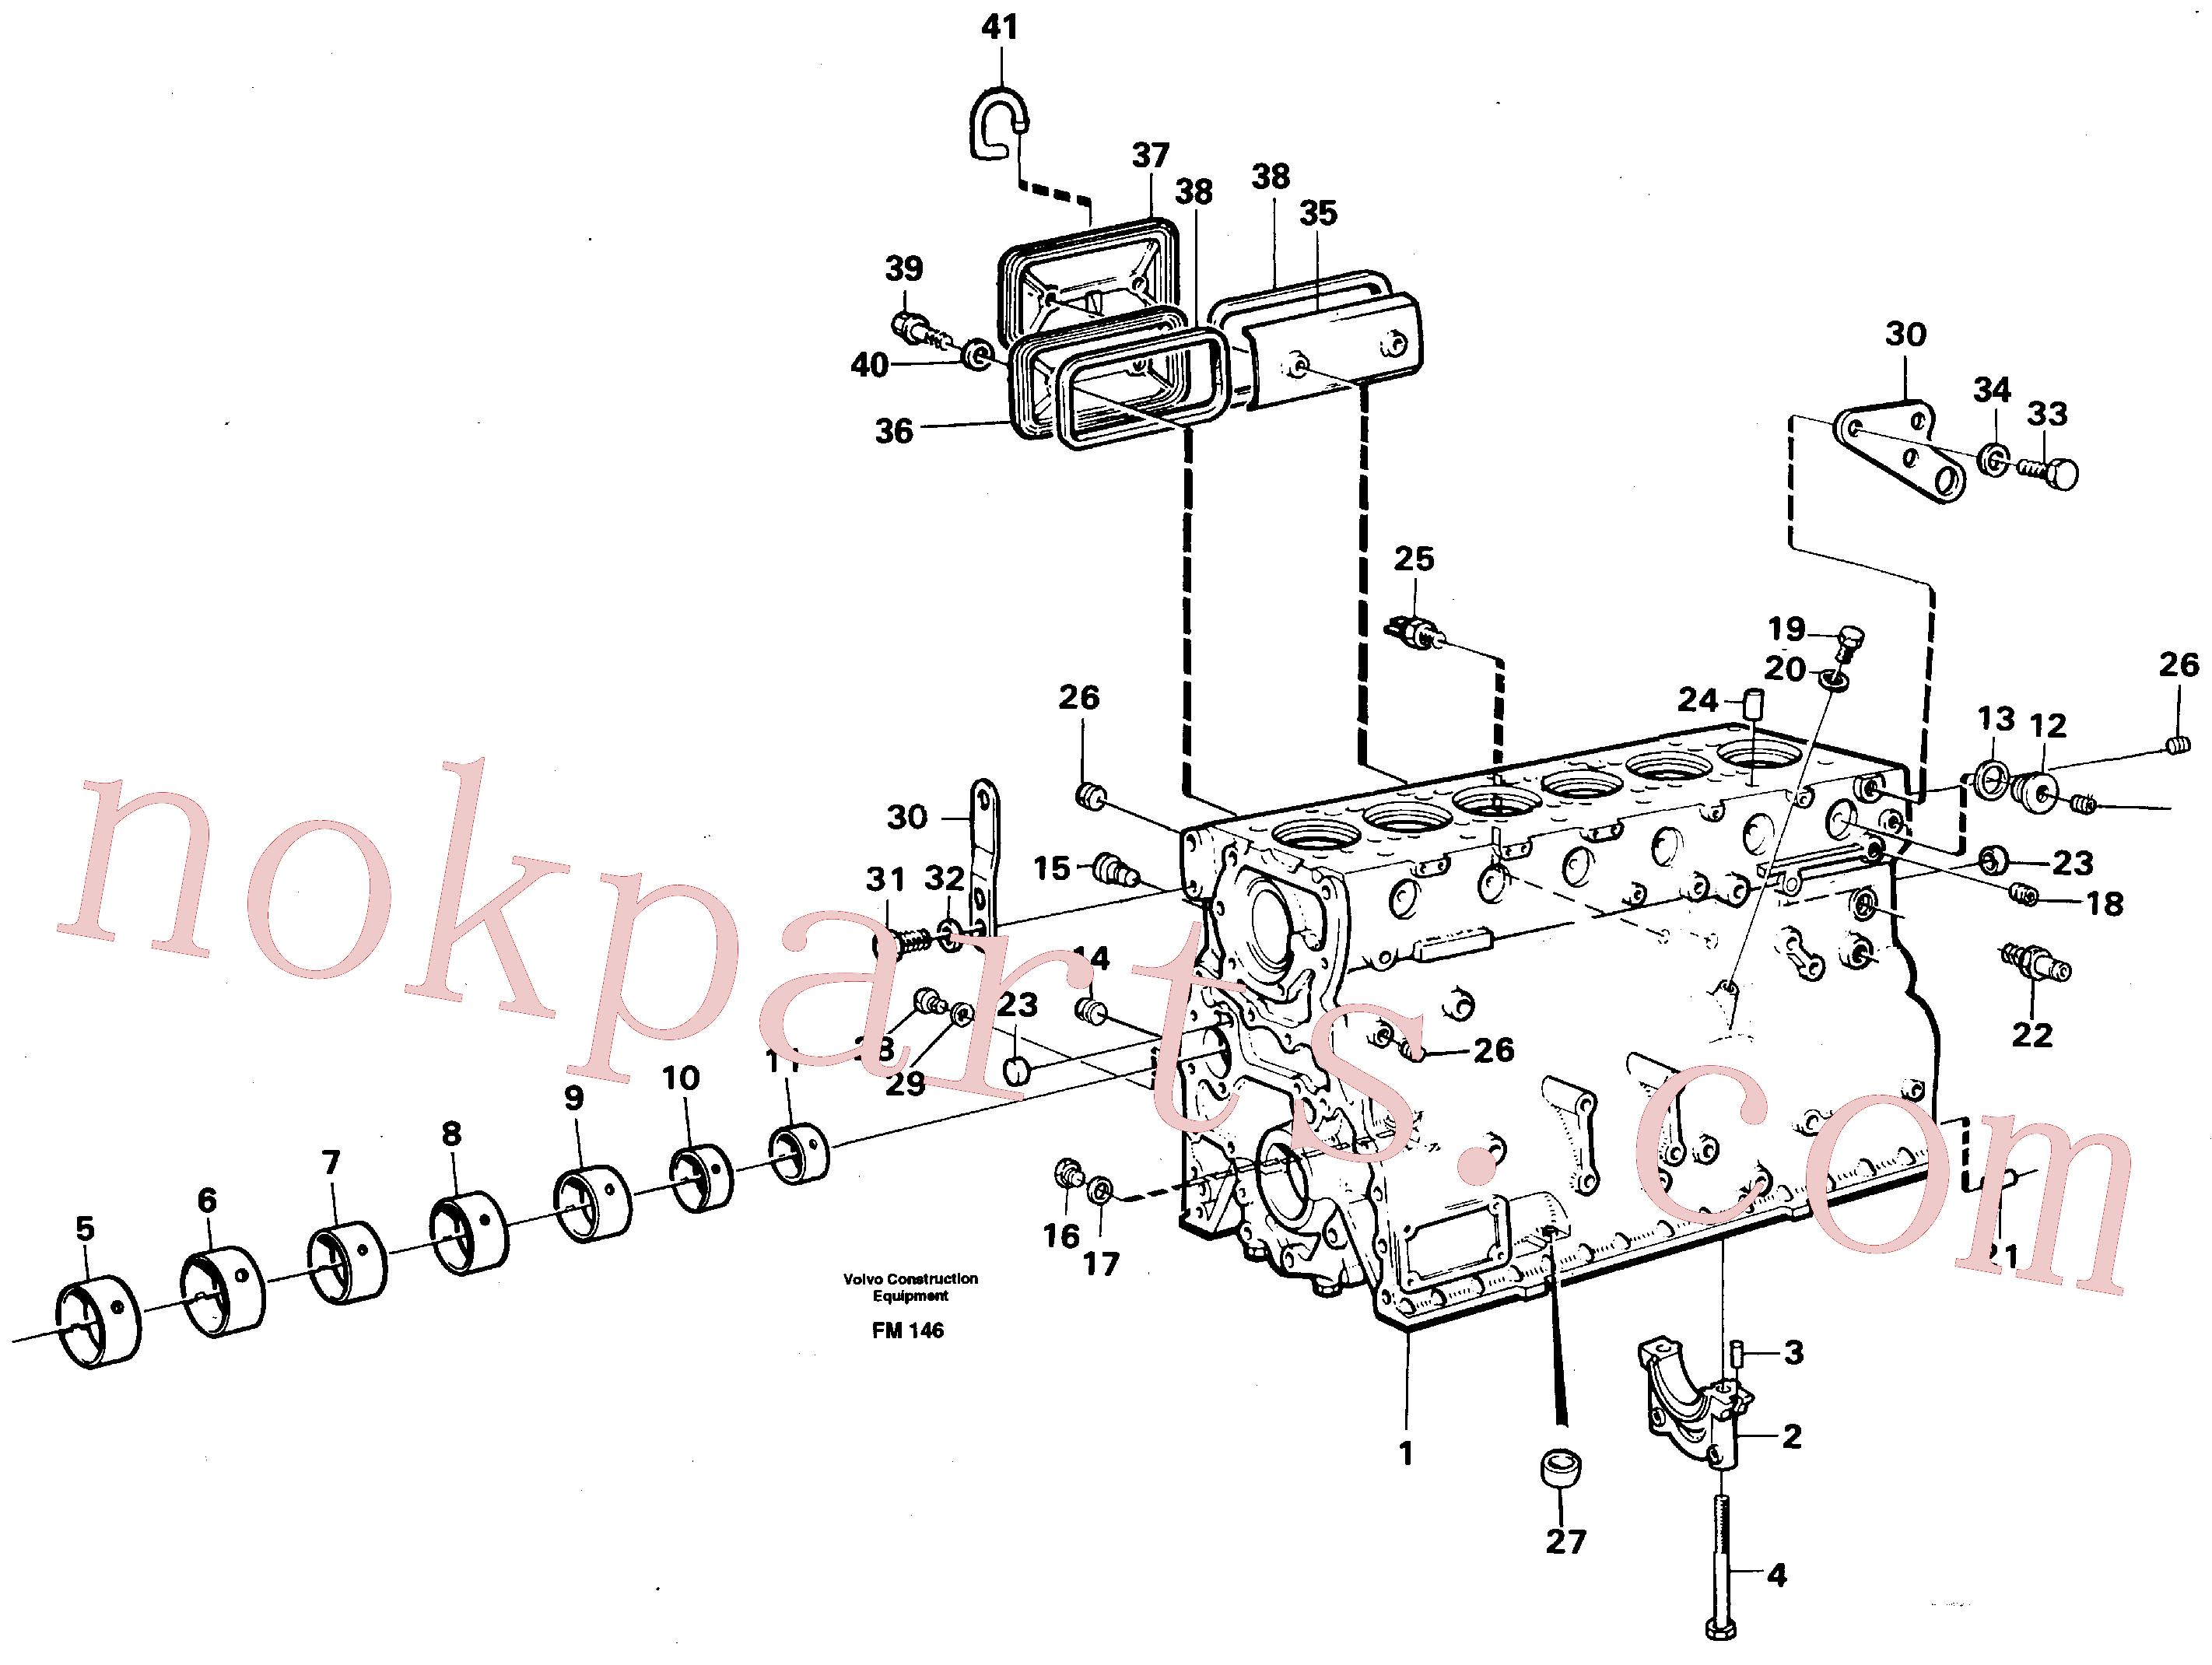 VOE191171 for Volvo Cylinder block(FM146 assembly)